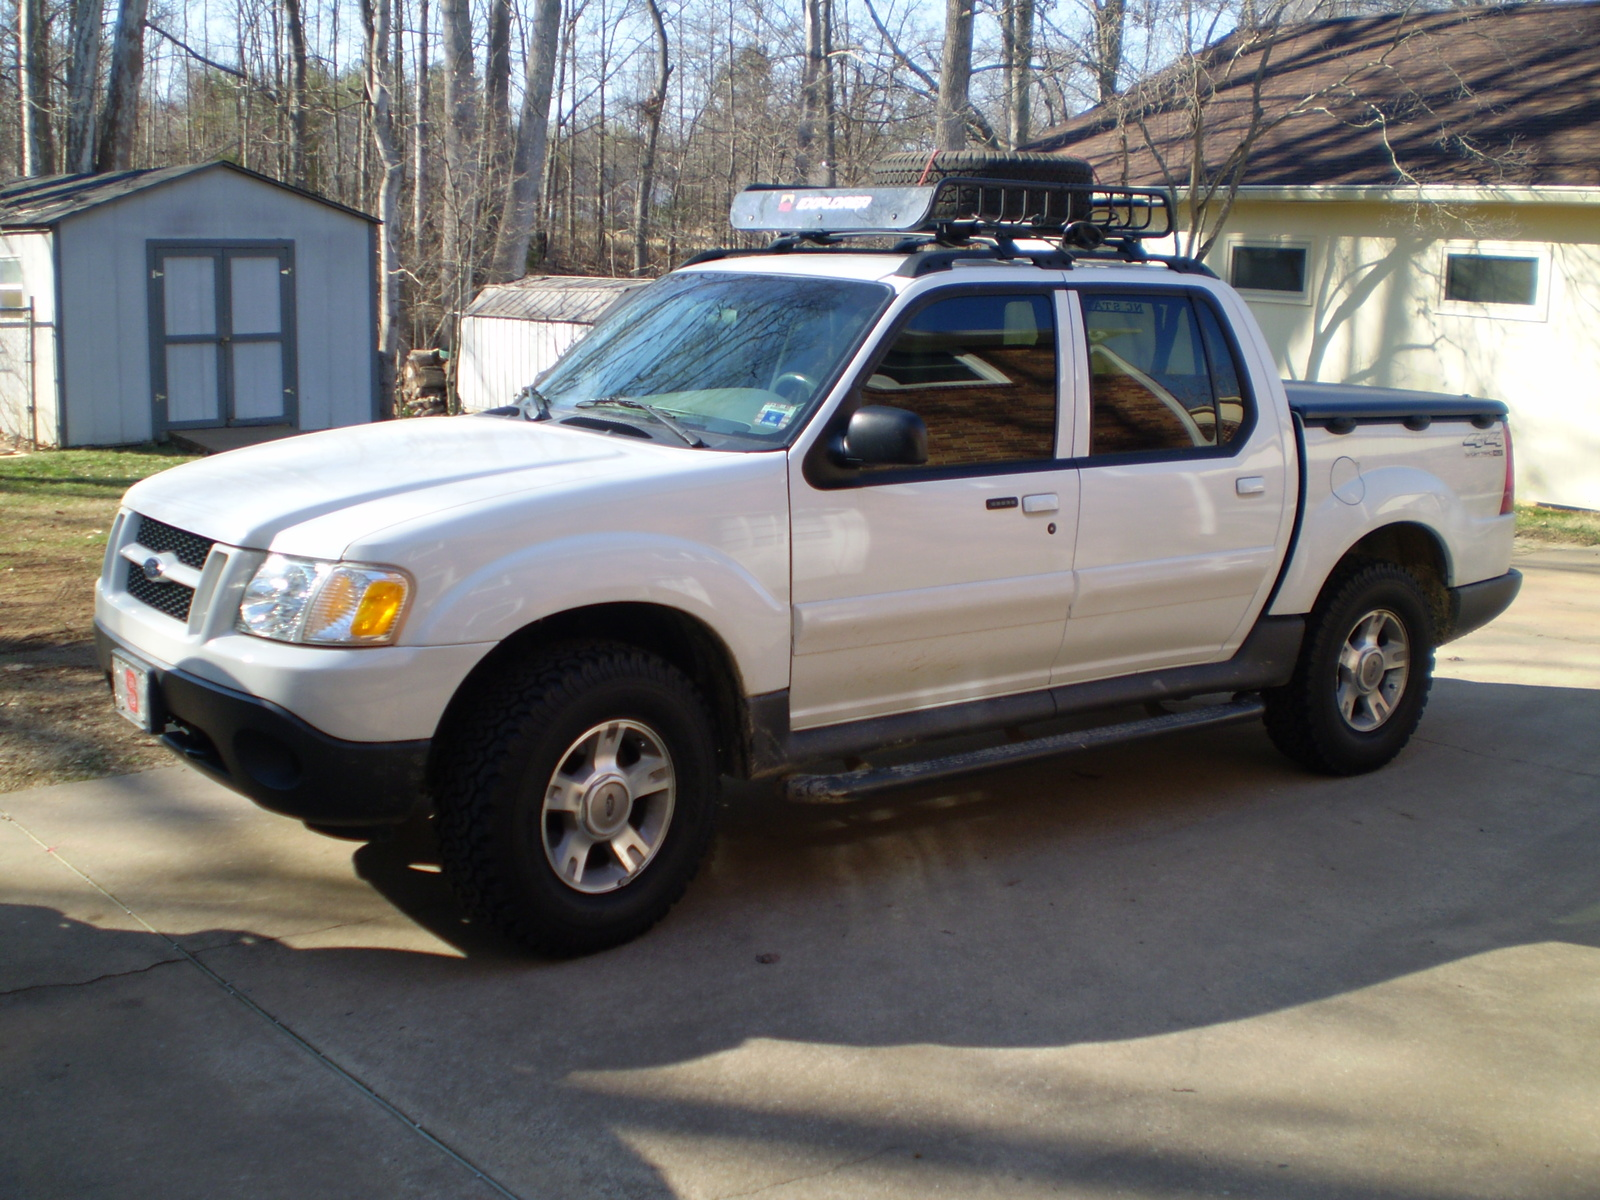 2004 ford explorer sport trac 4 dr xlt 4wd crew cab sb picture. Cars Review. Best American Auto & Cars Review